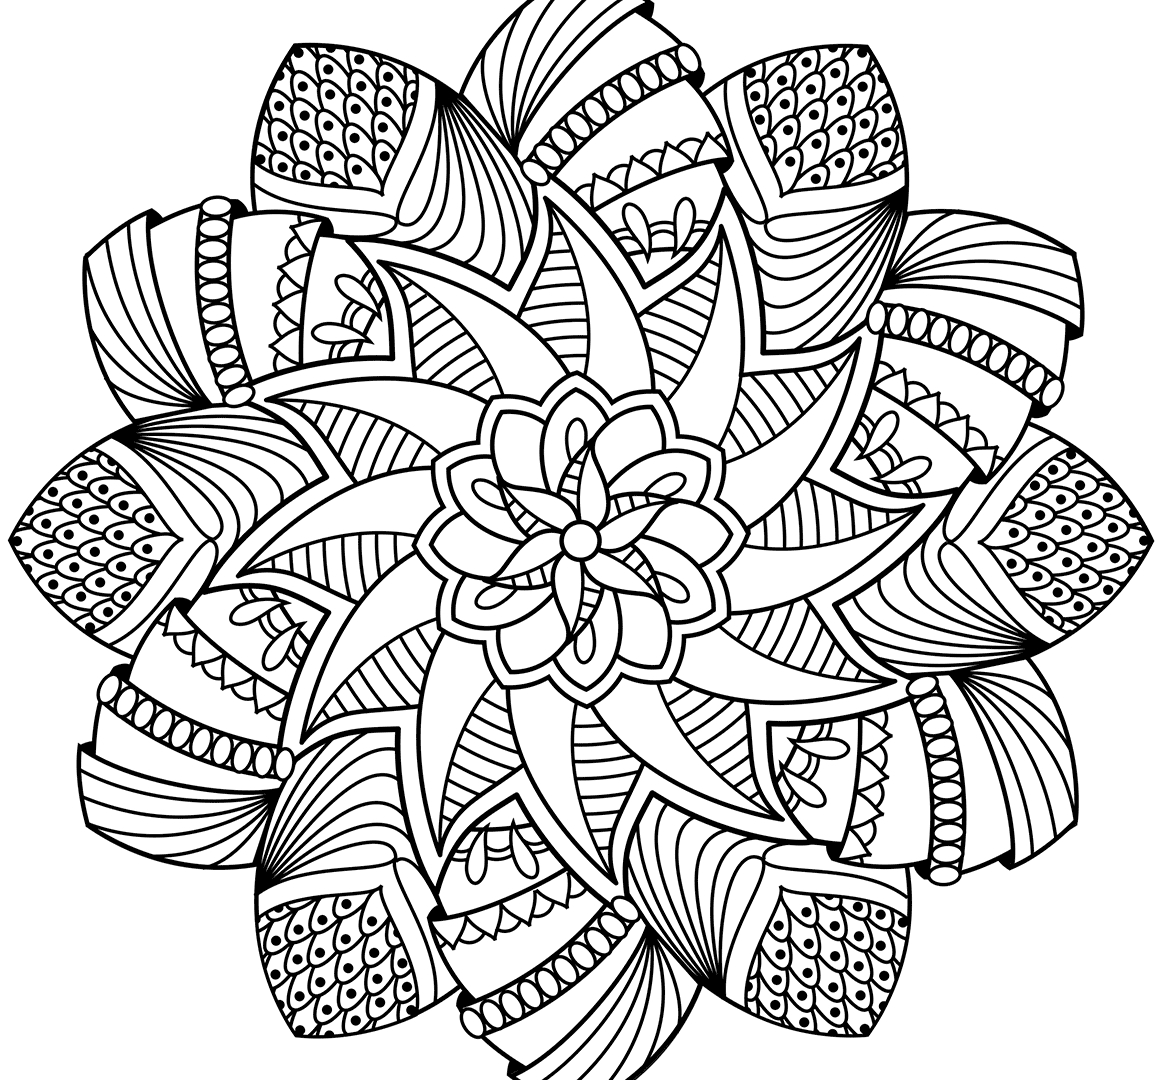 mandalas to color free flower mandala coloring pages printable at getdrawings to free color mandalas